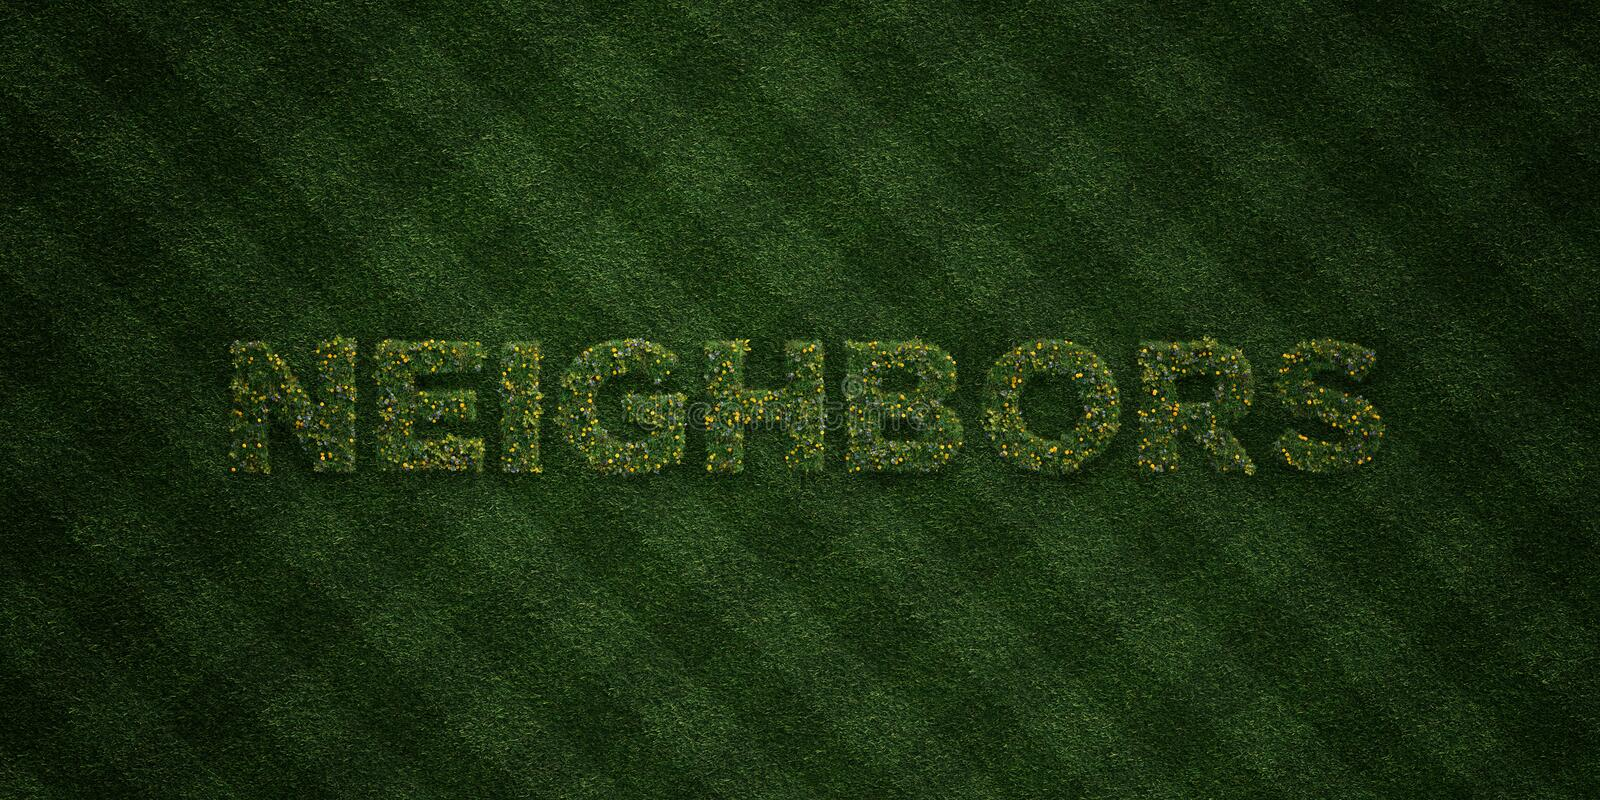 NEIGHBORS - fresh Grass letters with flowers and dandelions - 3D rendered royalty free stock image. Can be used for online banner ads and direct mailers vector illustration